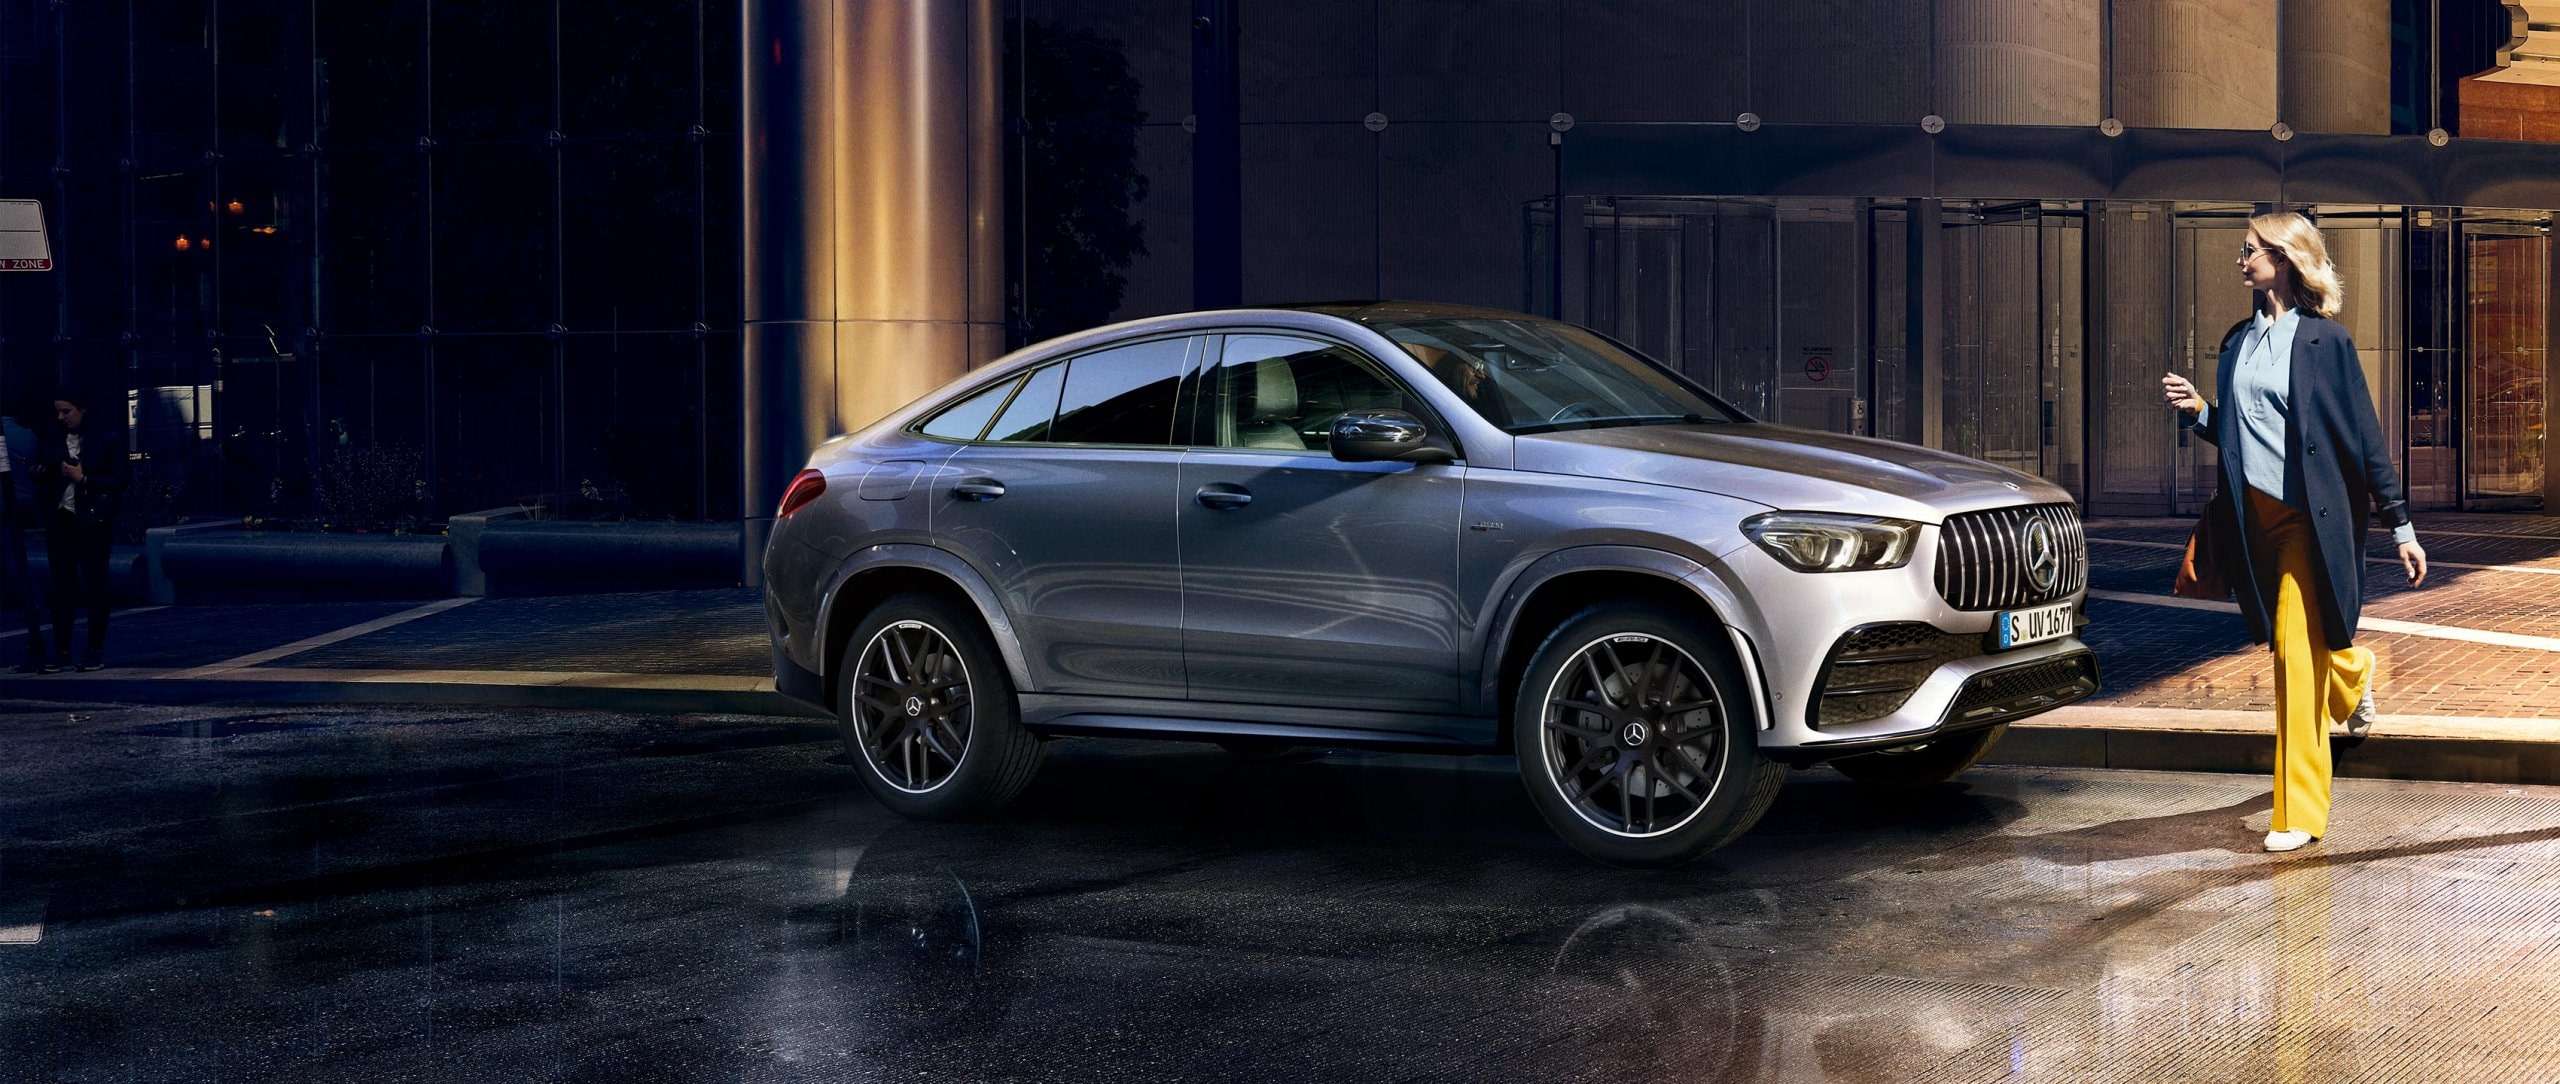 2020 Mercedes Gle Coupe Images